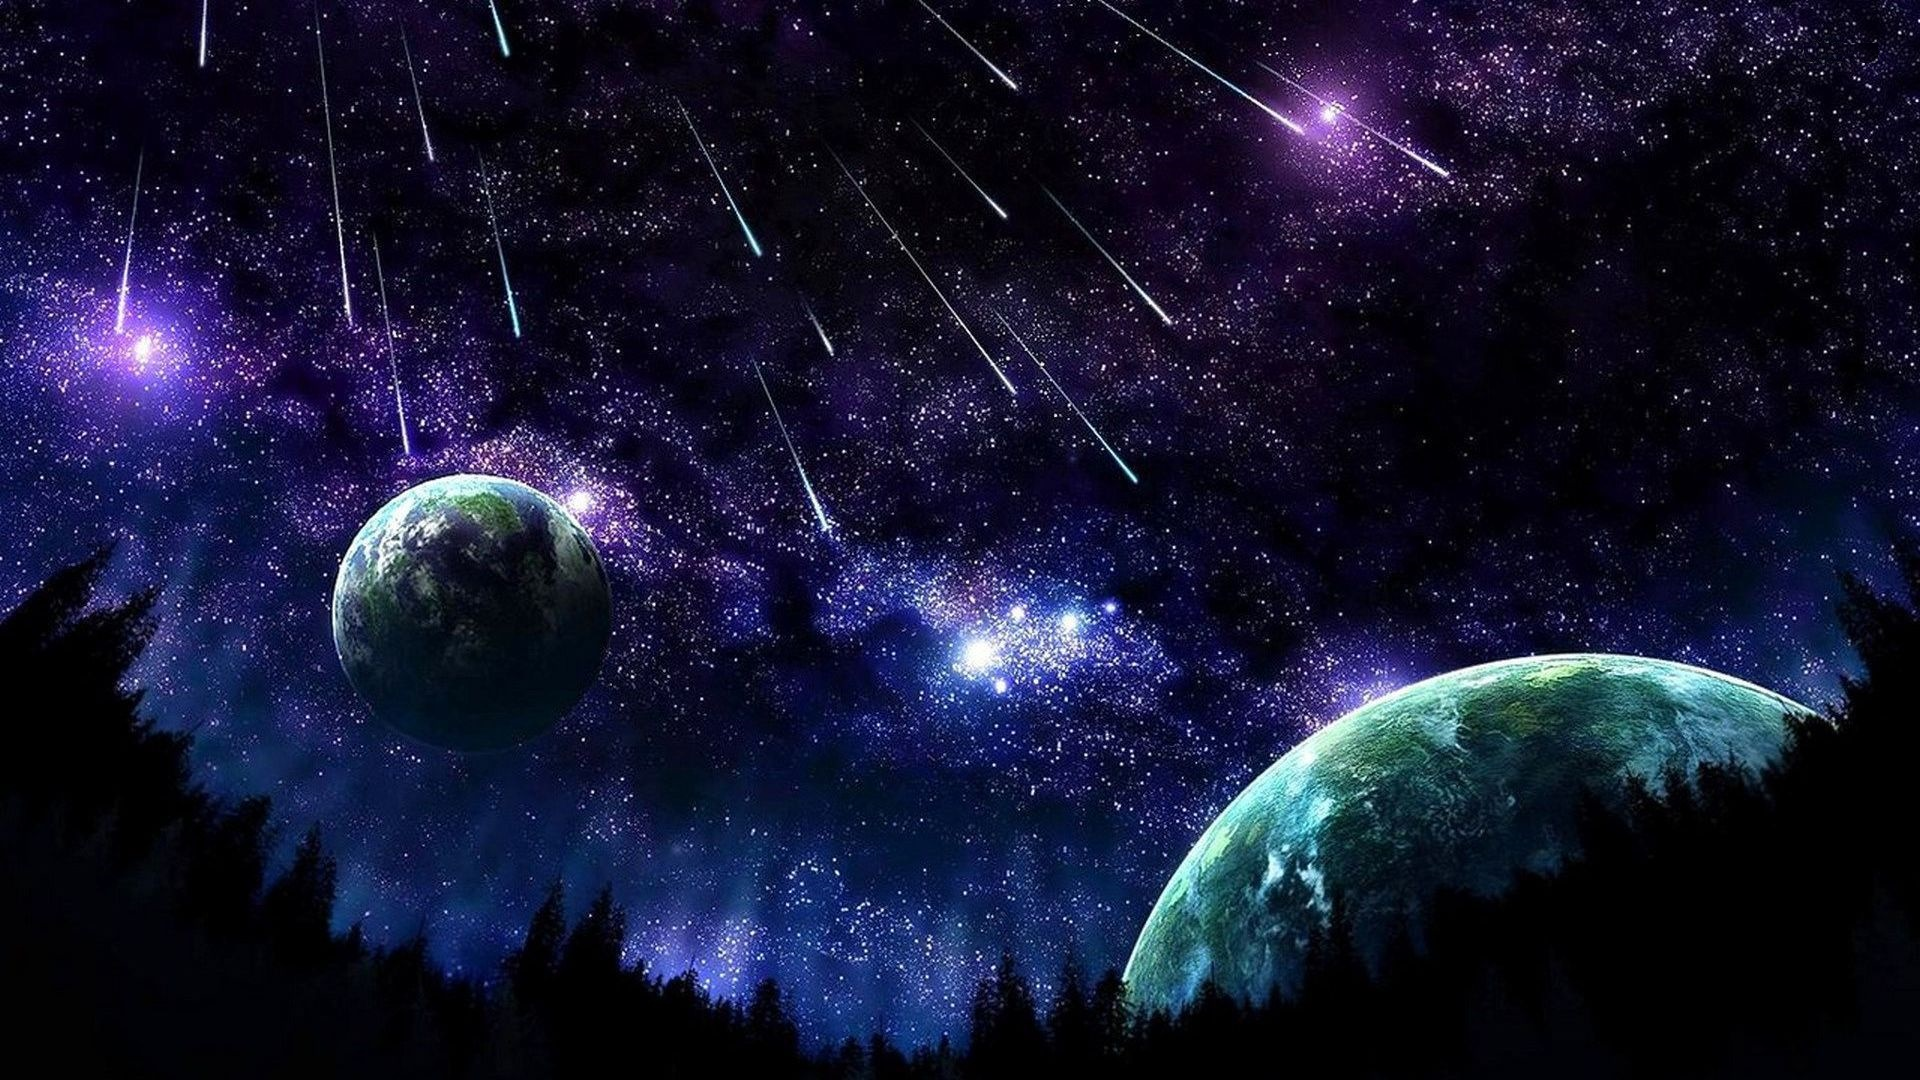 Stars Backgrounds free download